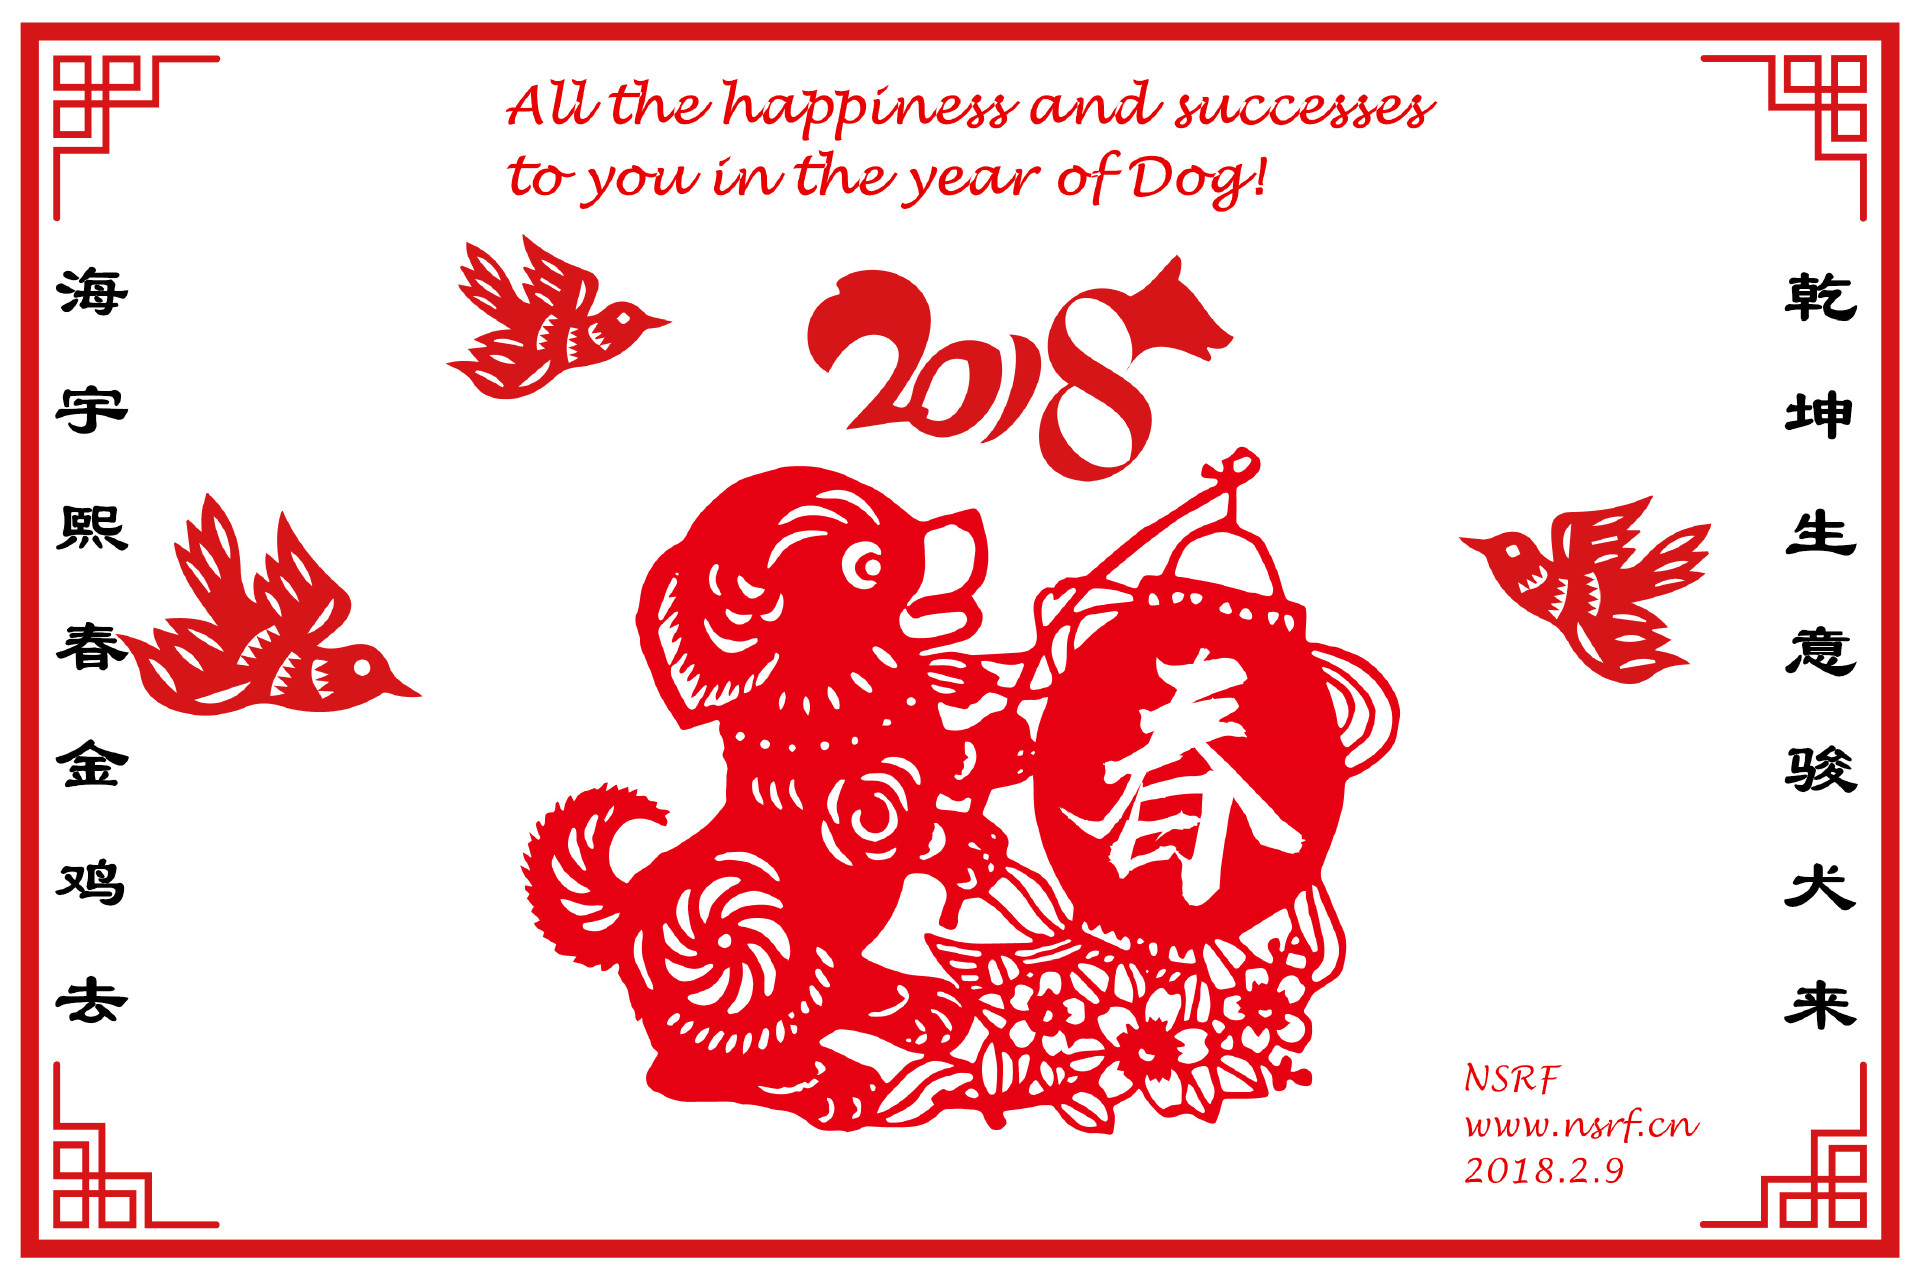 Wish all the happiness and successes to you all in the year